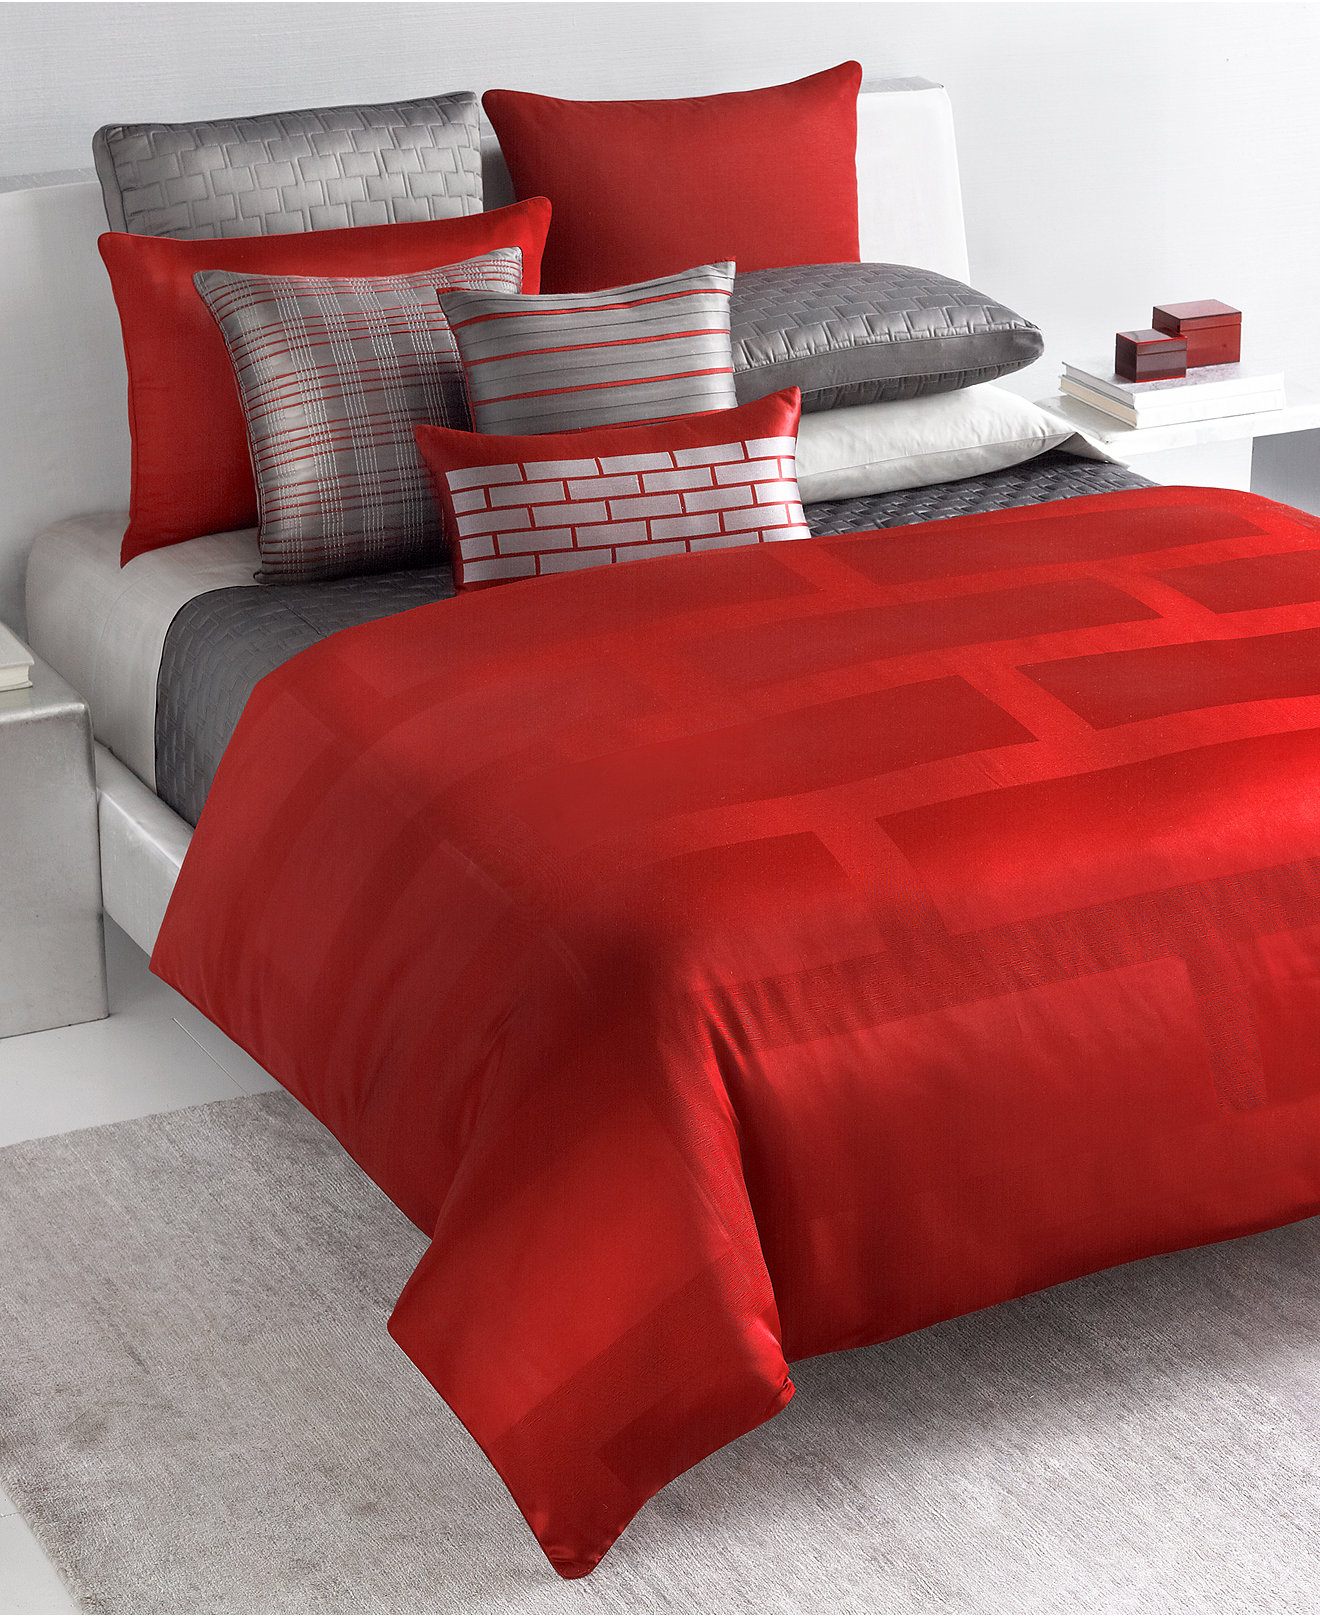 Macy Bedroom Furniture Closeout Closeout Hotel Frame Lacquer Bedding Collection Only At Macys